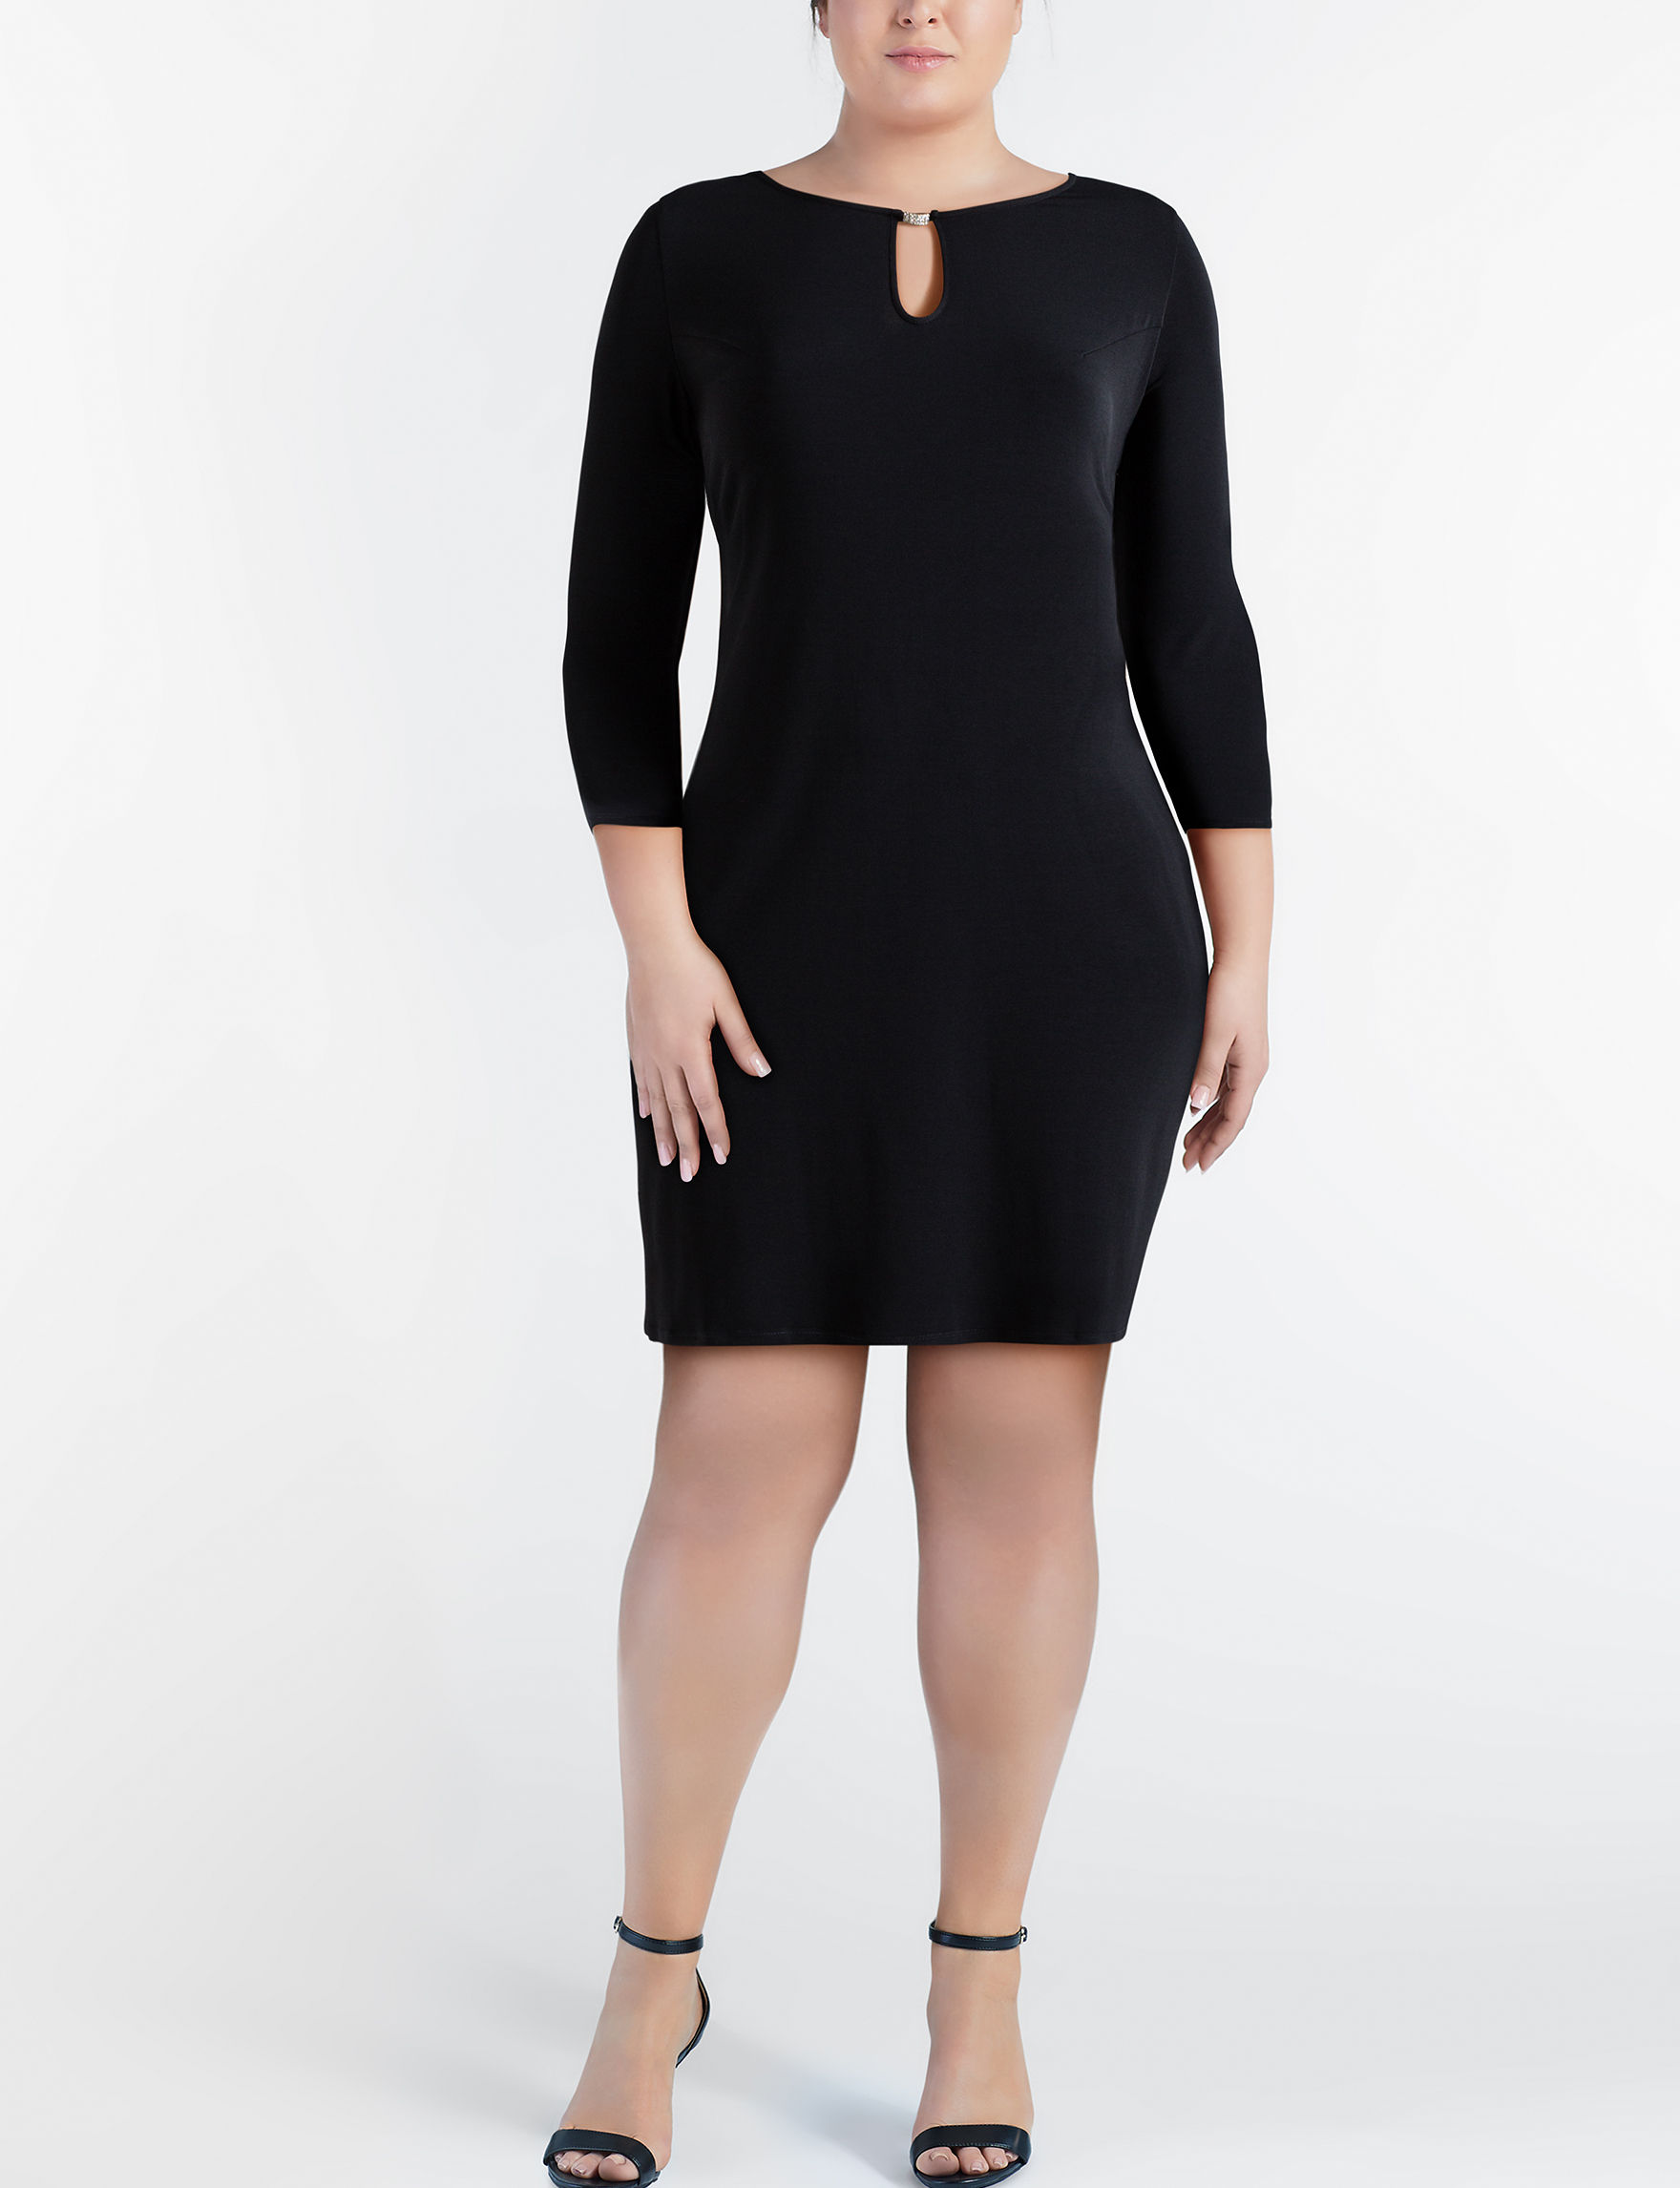 Glamour Black Everyday & Casual A-line Dresses